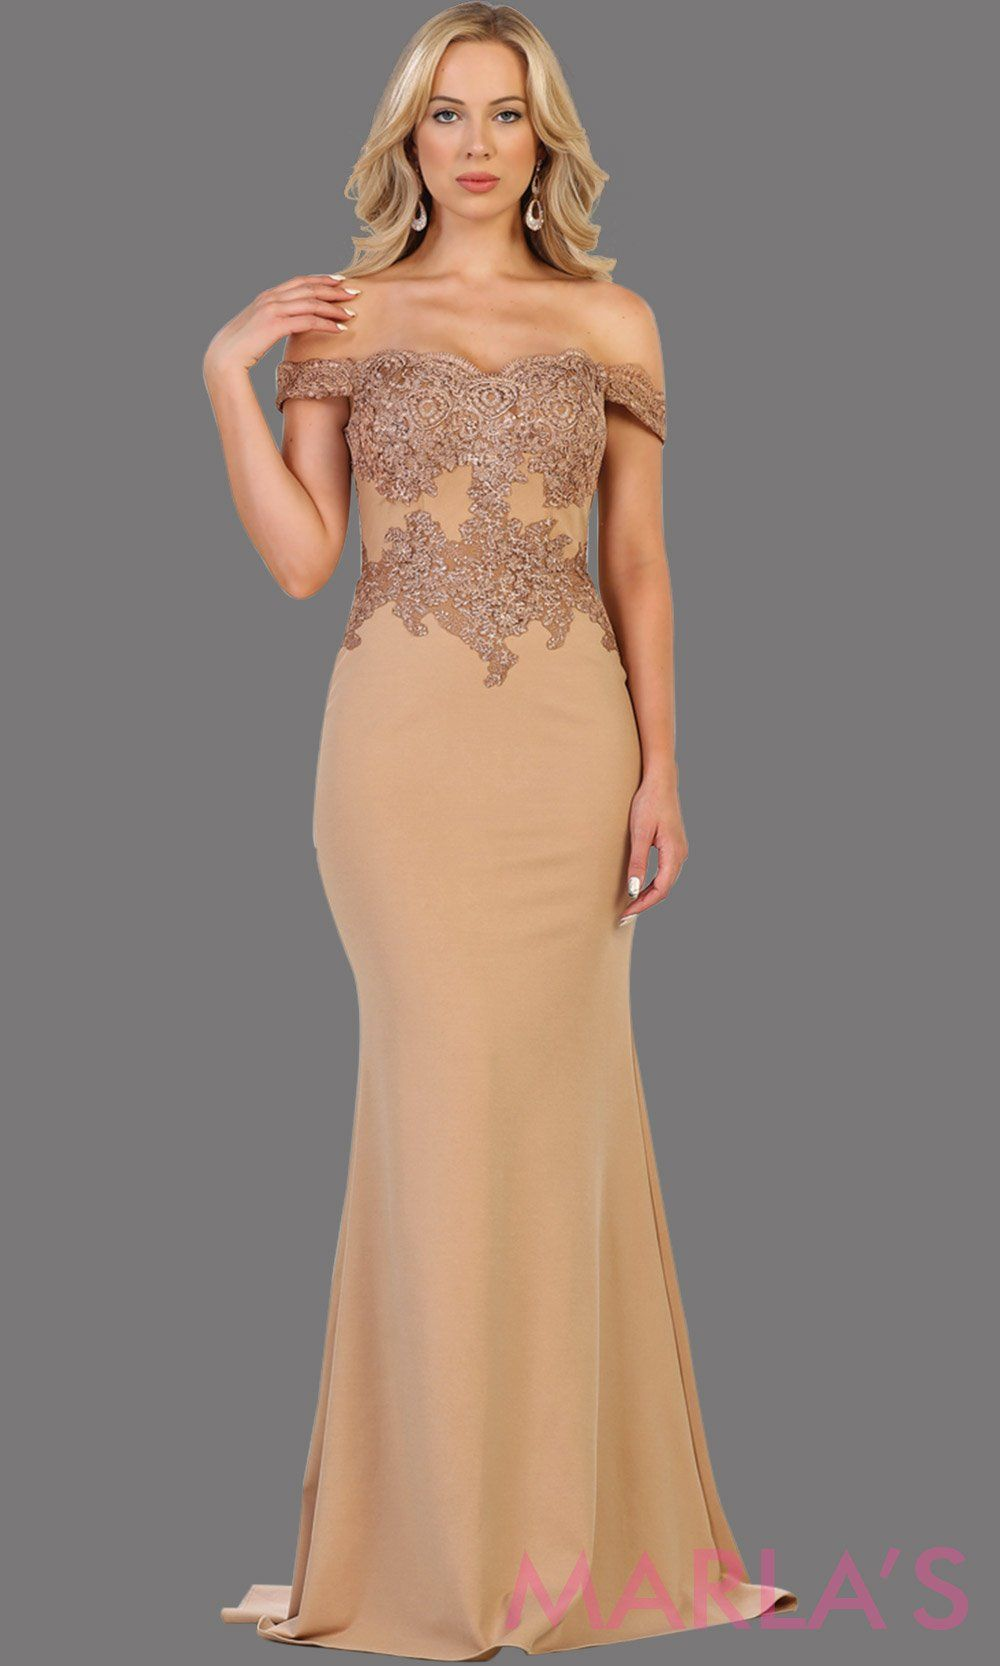 Long champagne off shoulder dress with lace. This sleek and sexy taupe dress is perfect for prom, formal wedding, bridesmaid dresses, fitted wedding guest dress, gala, engagement dress. Available in plus sizes